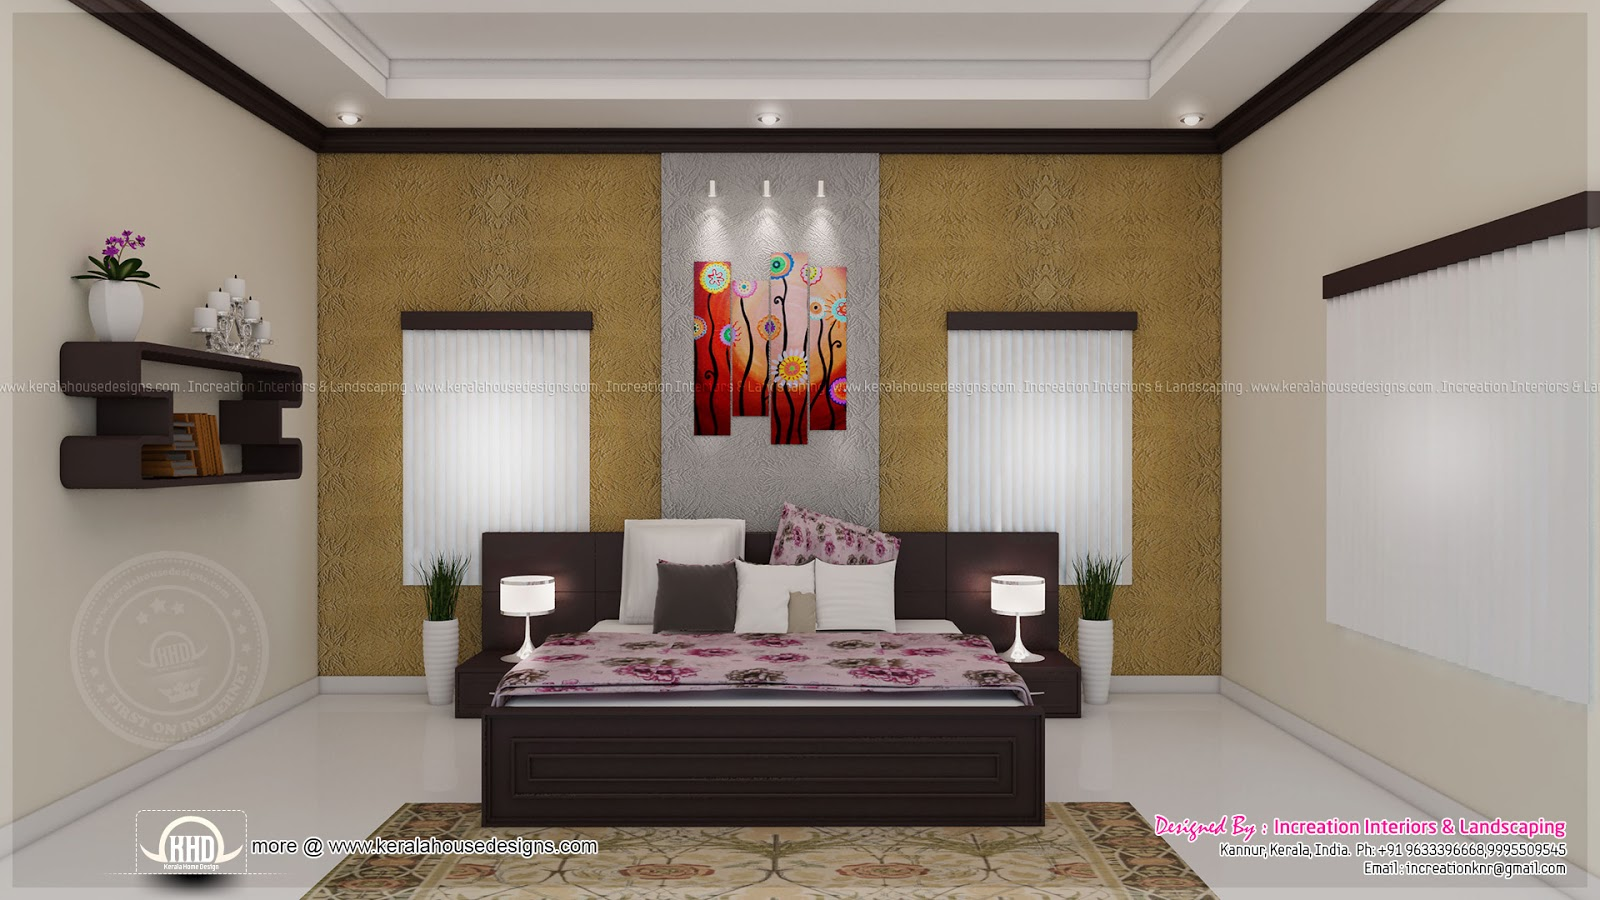 House interior ideas in 3d rendering kerala home design for Interior desings